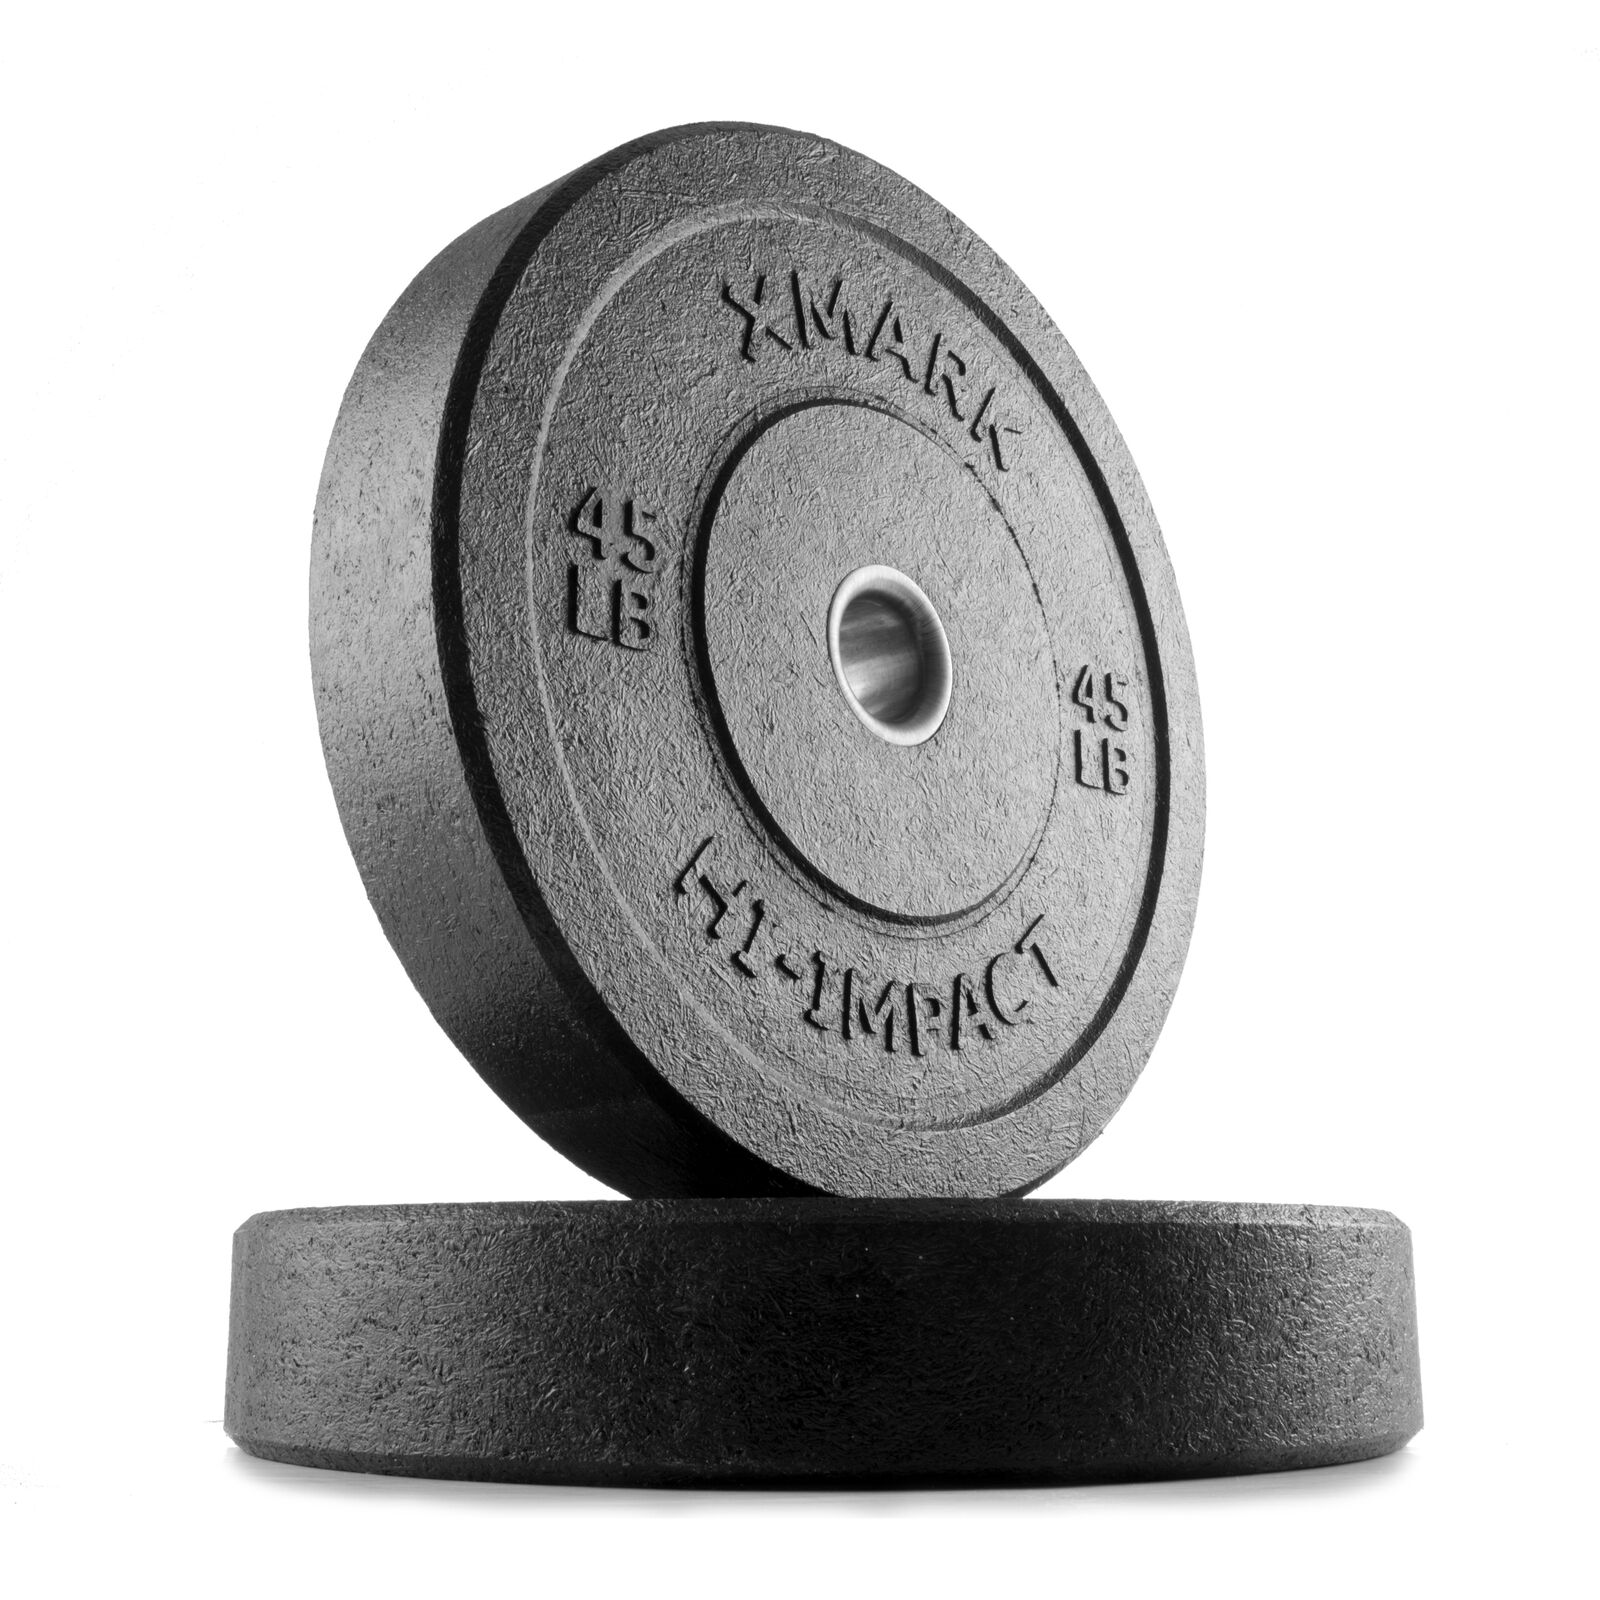 XMark HI-IMPACT  45 lb. Pair of Olympic Bumper Plate Weights XM-3391-45-P  order now lowest prices